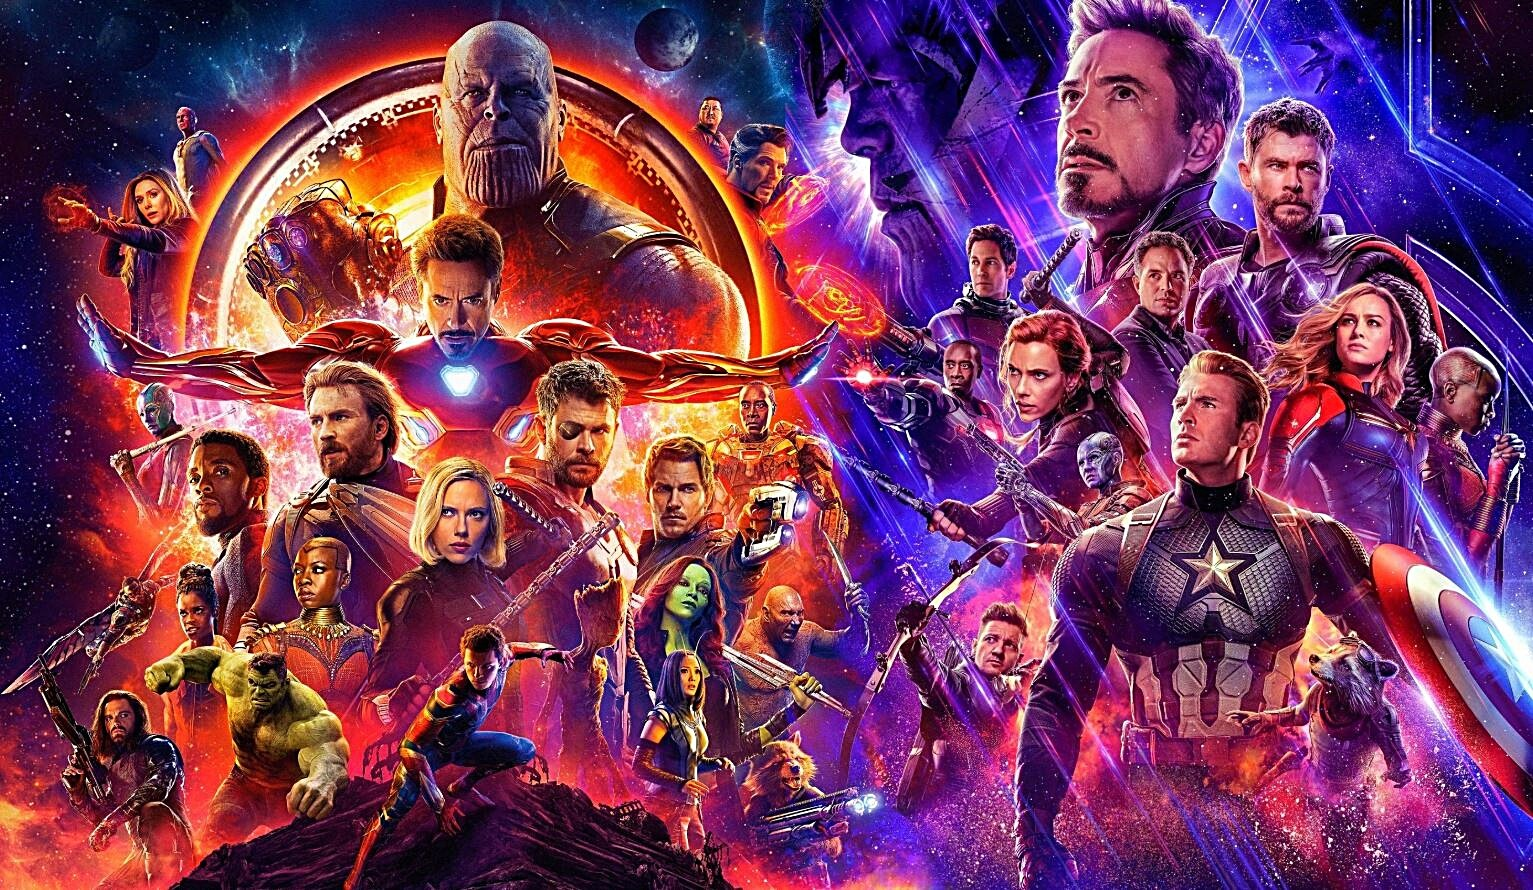 Amc Theatres Hosting Mcu Marathon Before Avengers Endgame